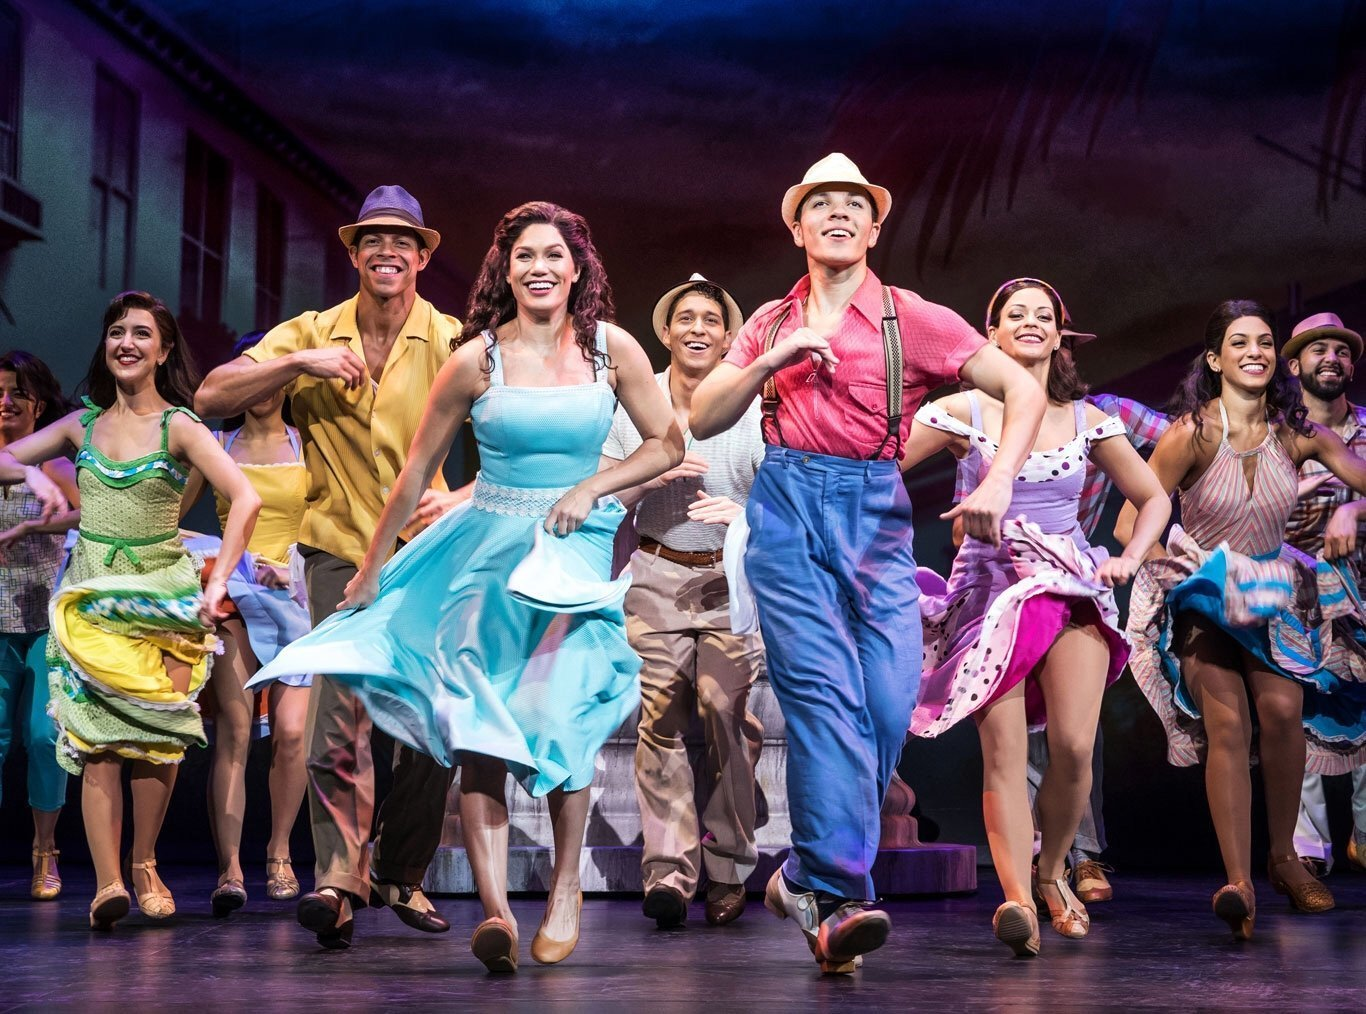 BWW Review: ON YOUR FEET! THE EMILIO & GLORIA ESTEFAN MUSICAL at Bass Performance Hall